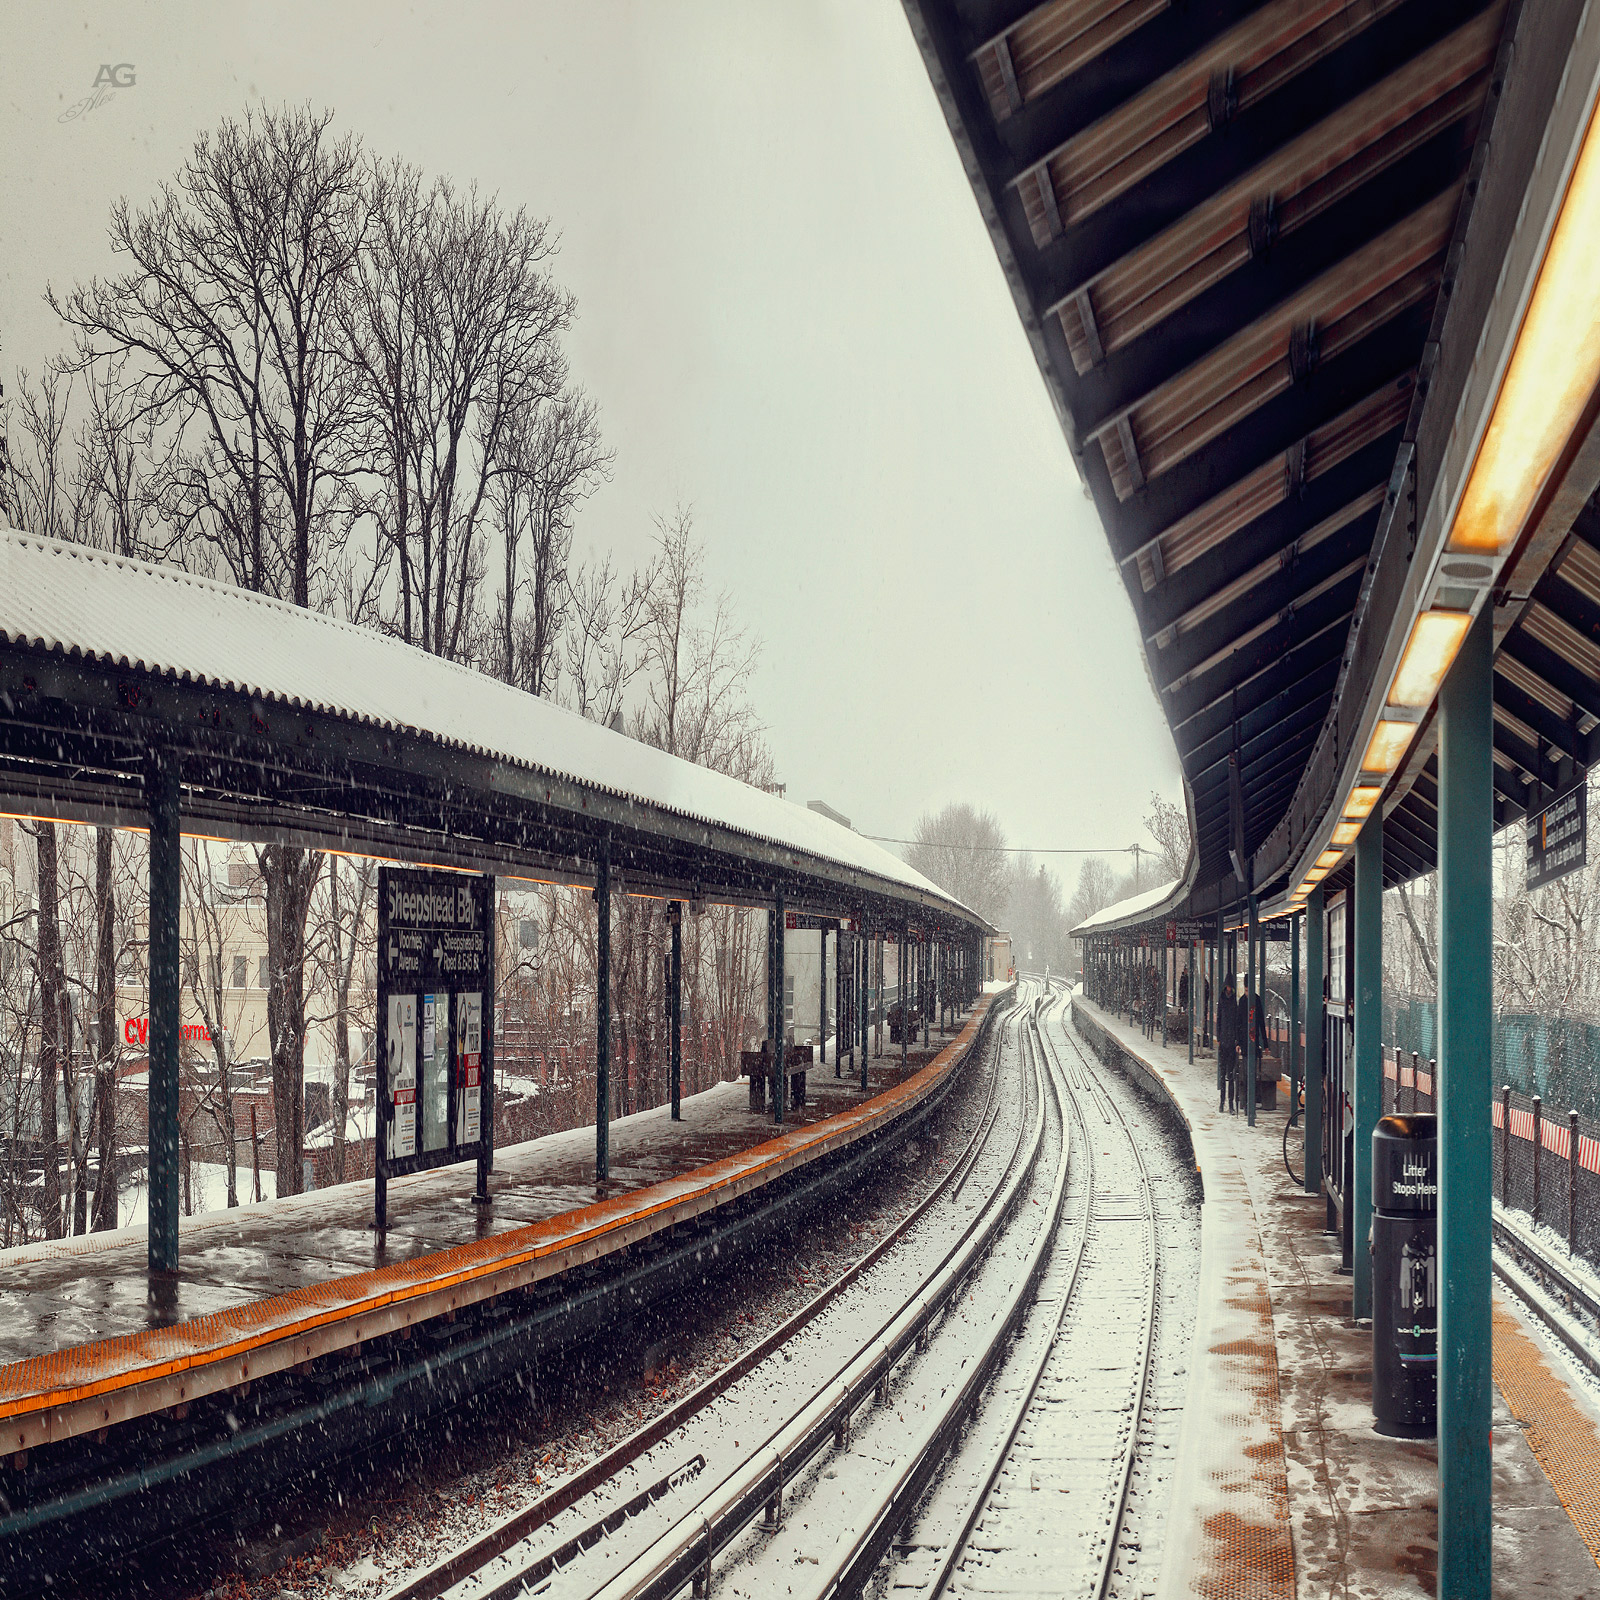 SheepsheadBayTrainSubwayStationSnow_squished_1600